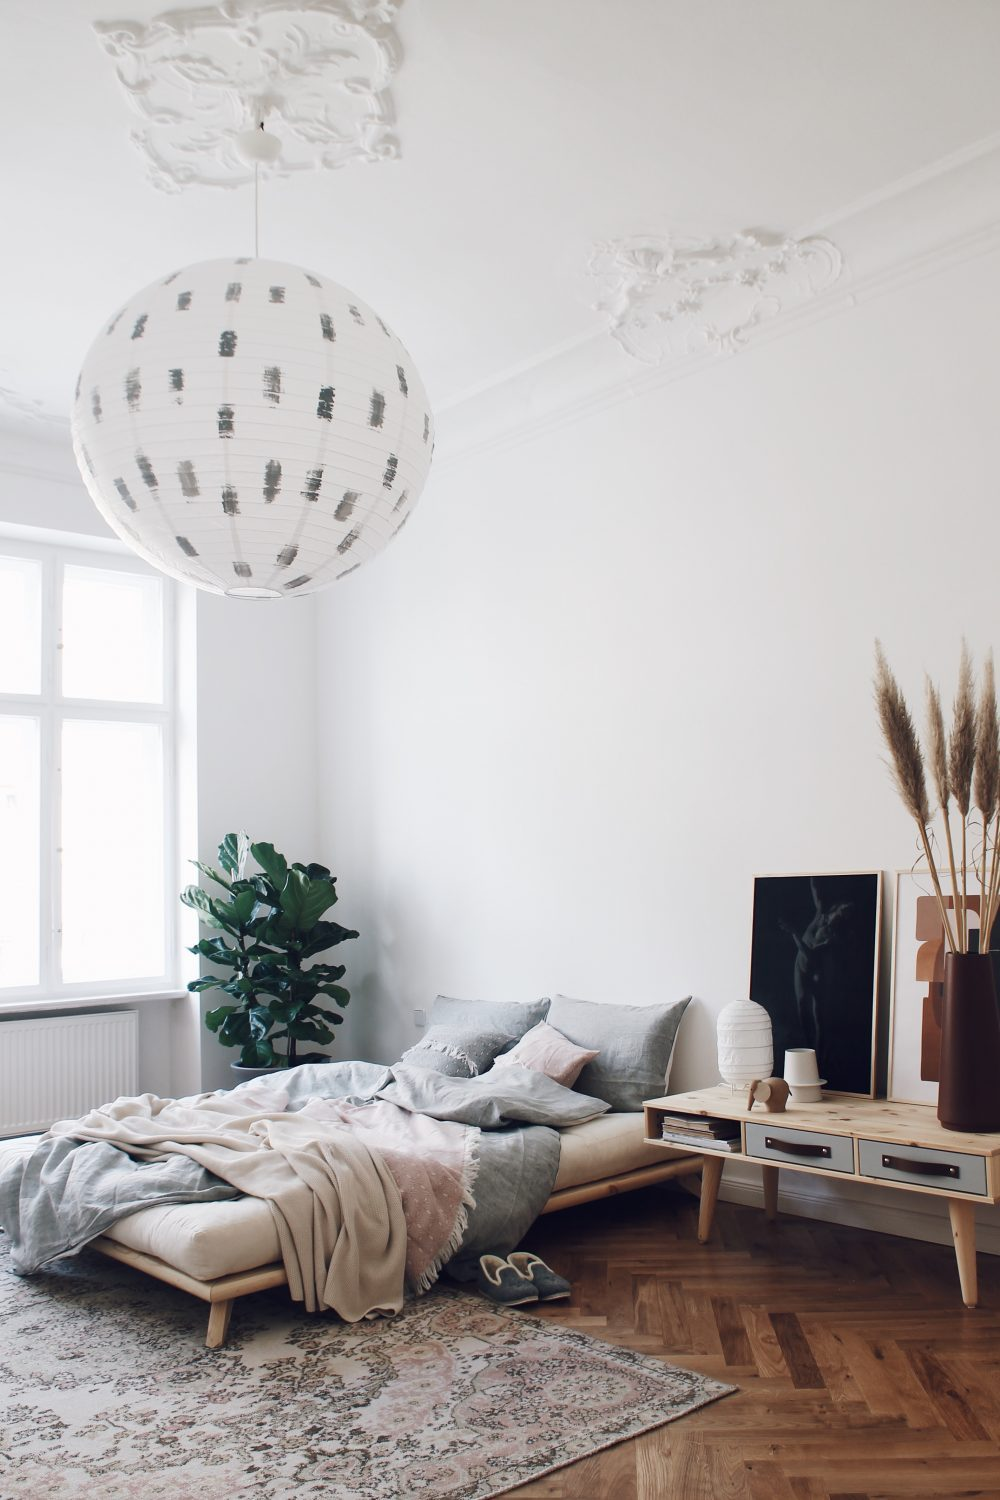 berlin altbau styling example by interior stylists salty interiors. Black Bedroom Furniture Sets. Home Design Ideas